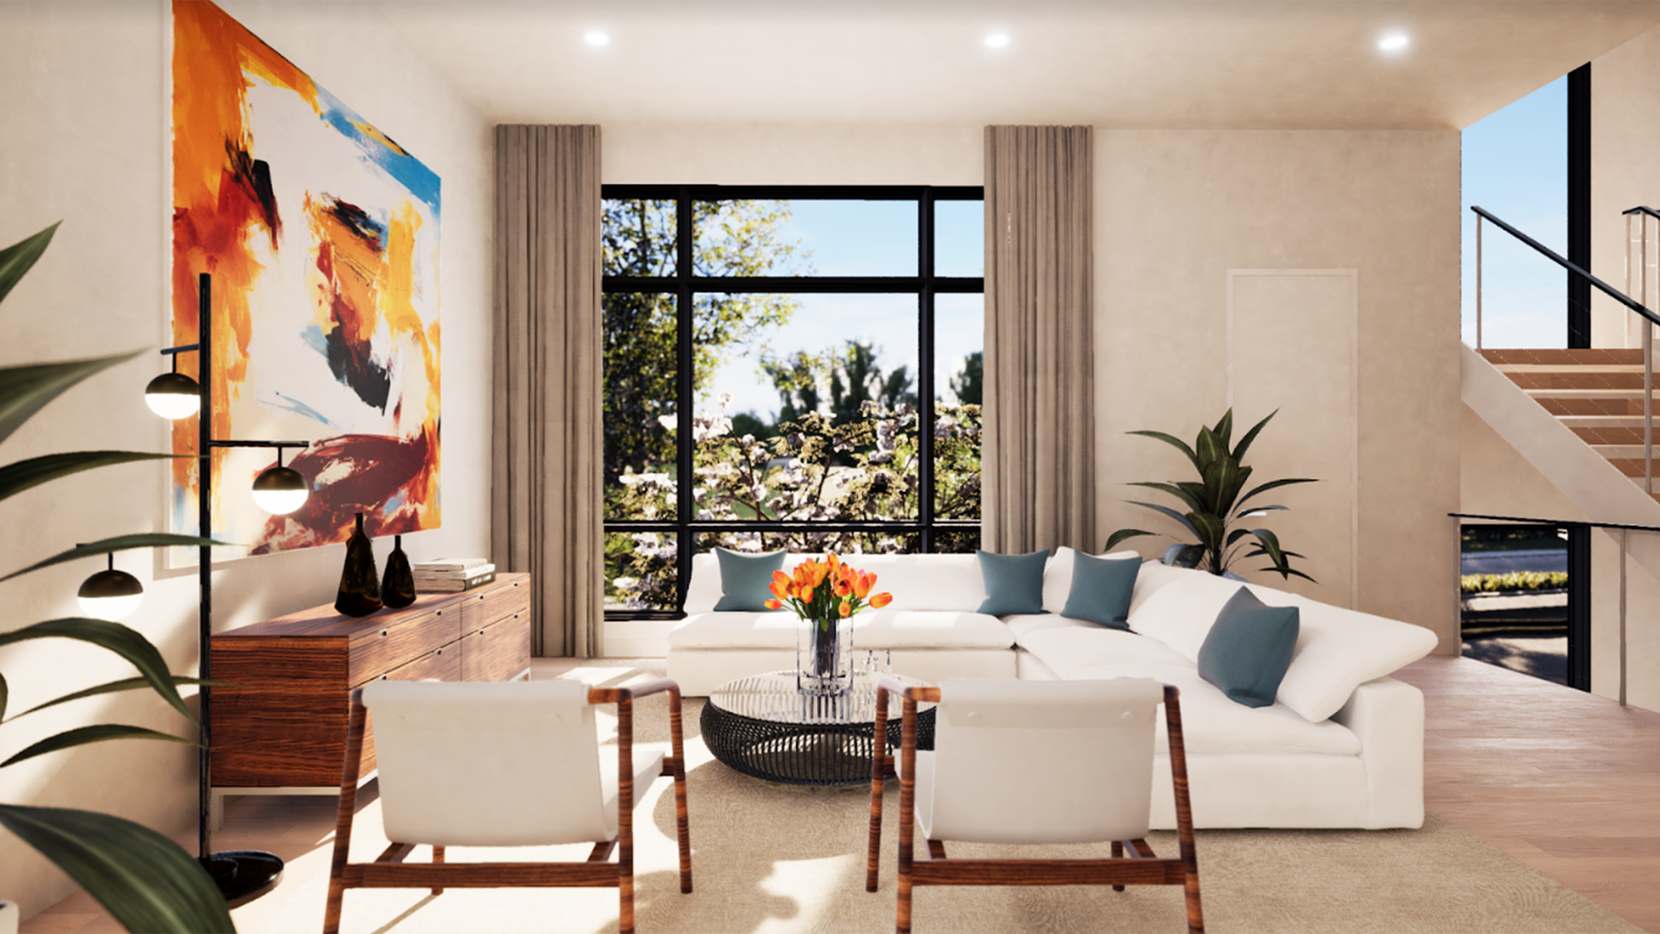 Townhomes at the Kessler West community offer abundant natural light from large windows on each floor and custom art lighting throughout.